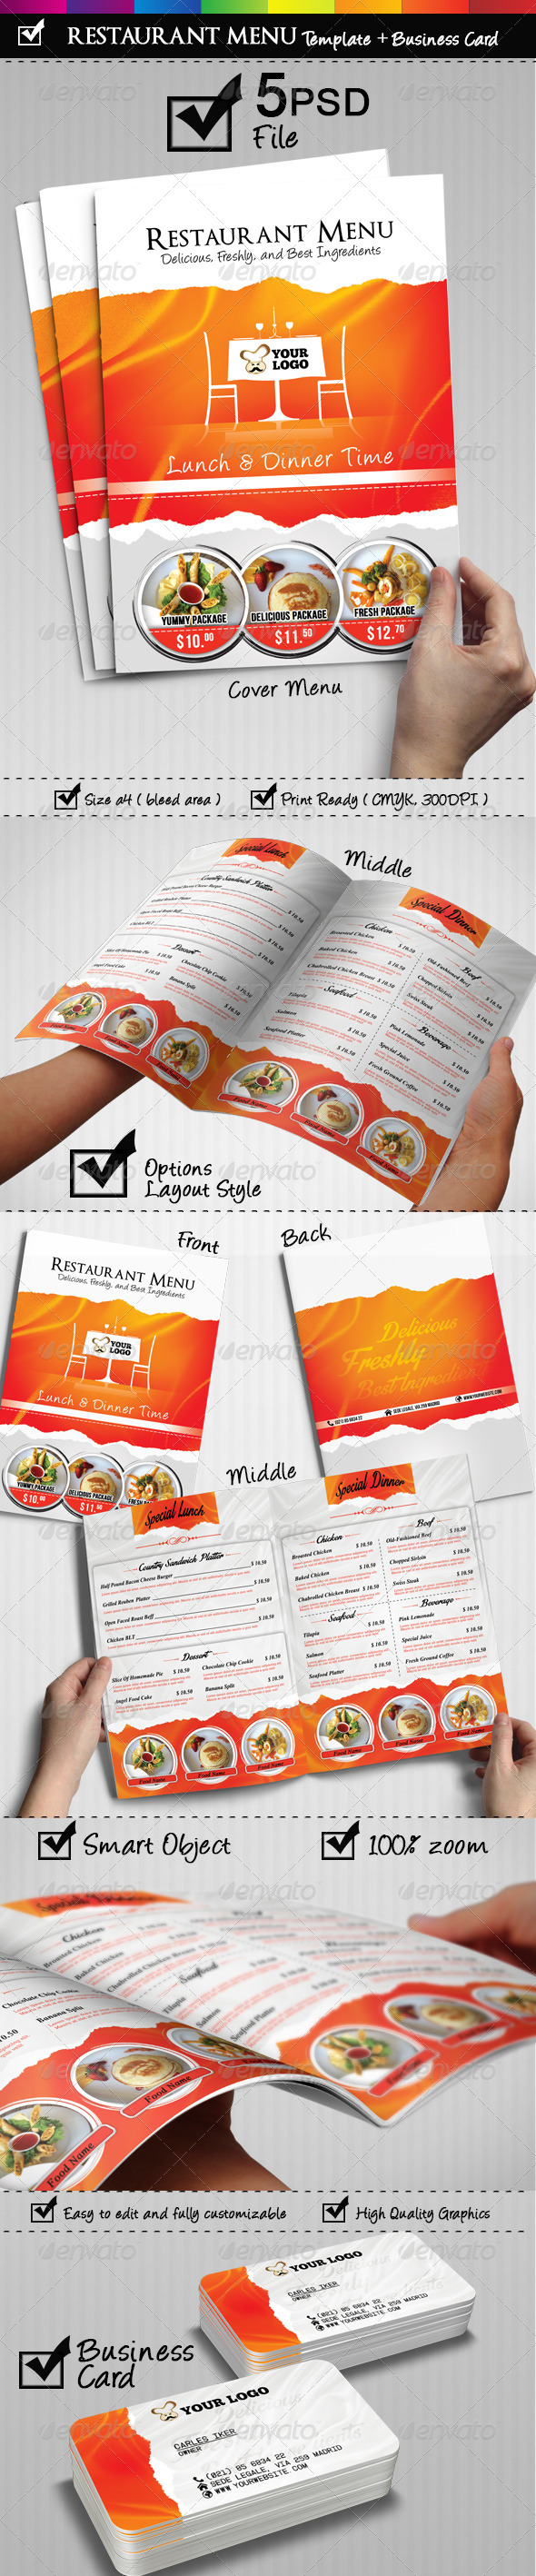 GraphicRiver Restaurant Menu With Business Card Included 6916216